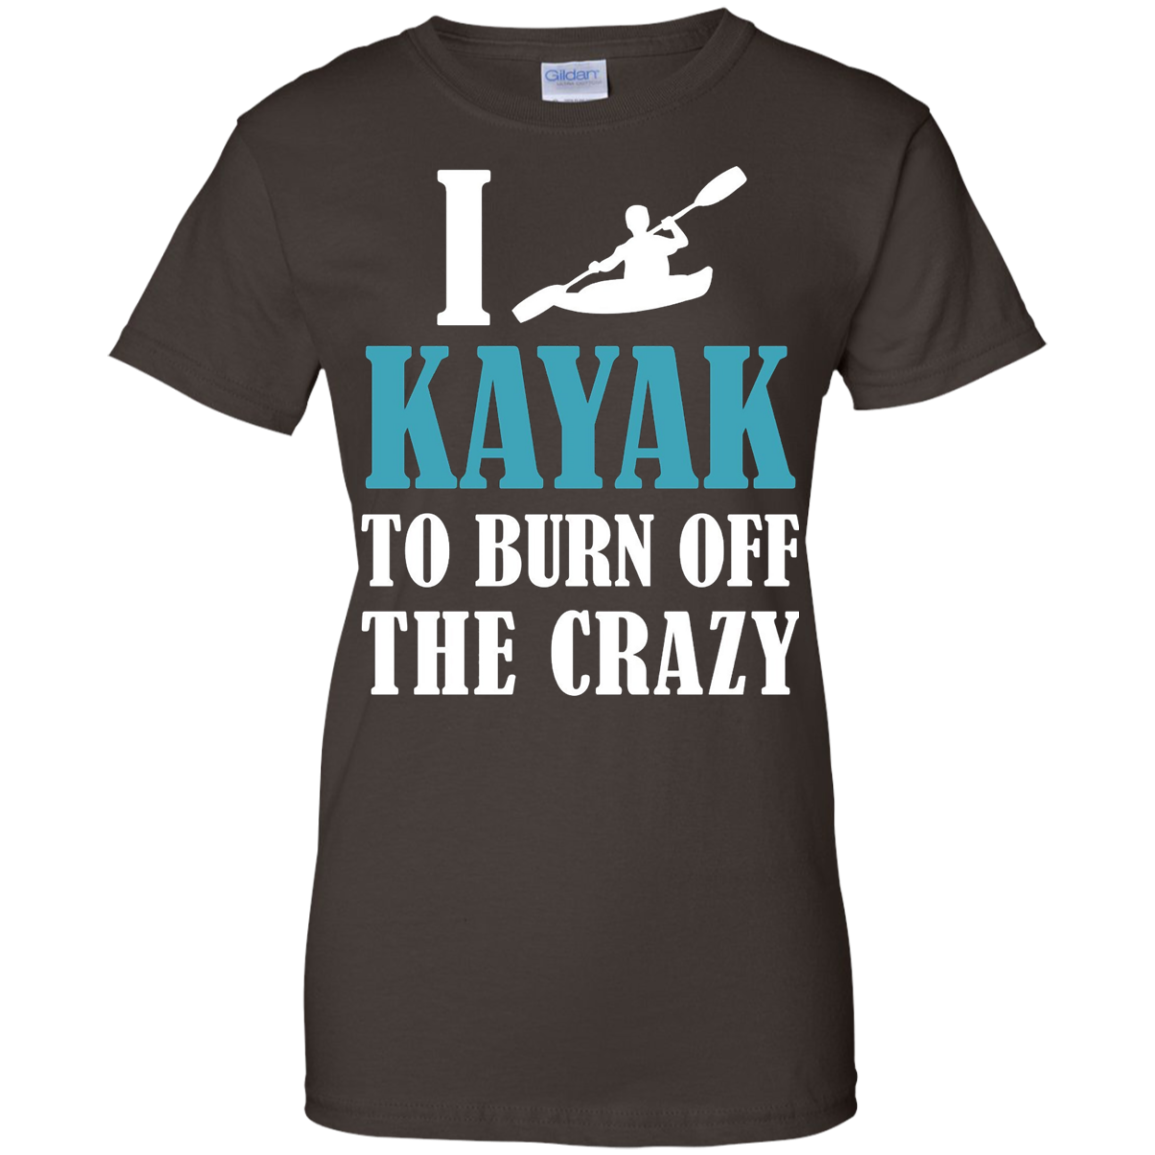 Kayaking shirts - I kayak to burn off the crazy